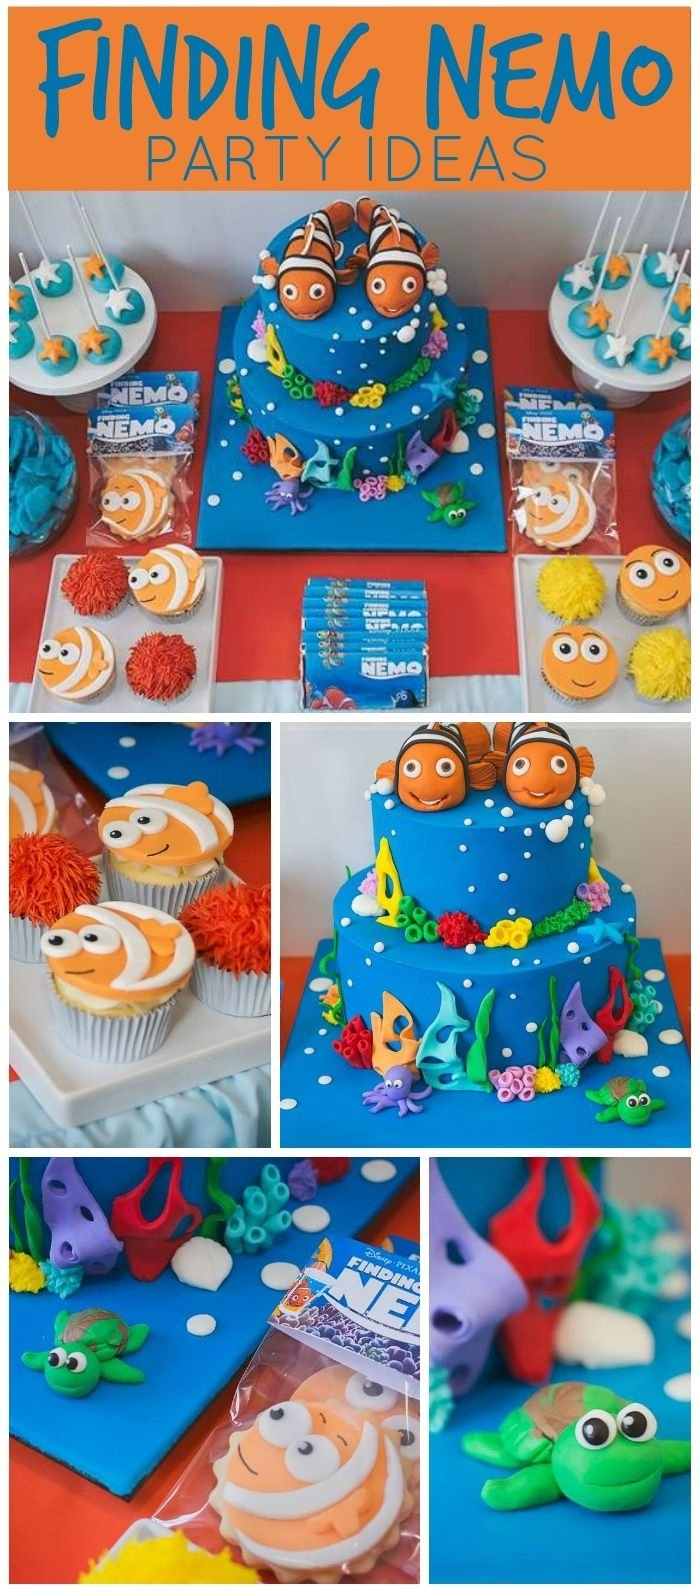 10 Most Popular Unique First Birthday Party Ideas For Boys 63 best finding dory finding nemo party ideas images on pinterest 1